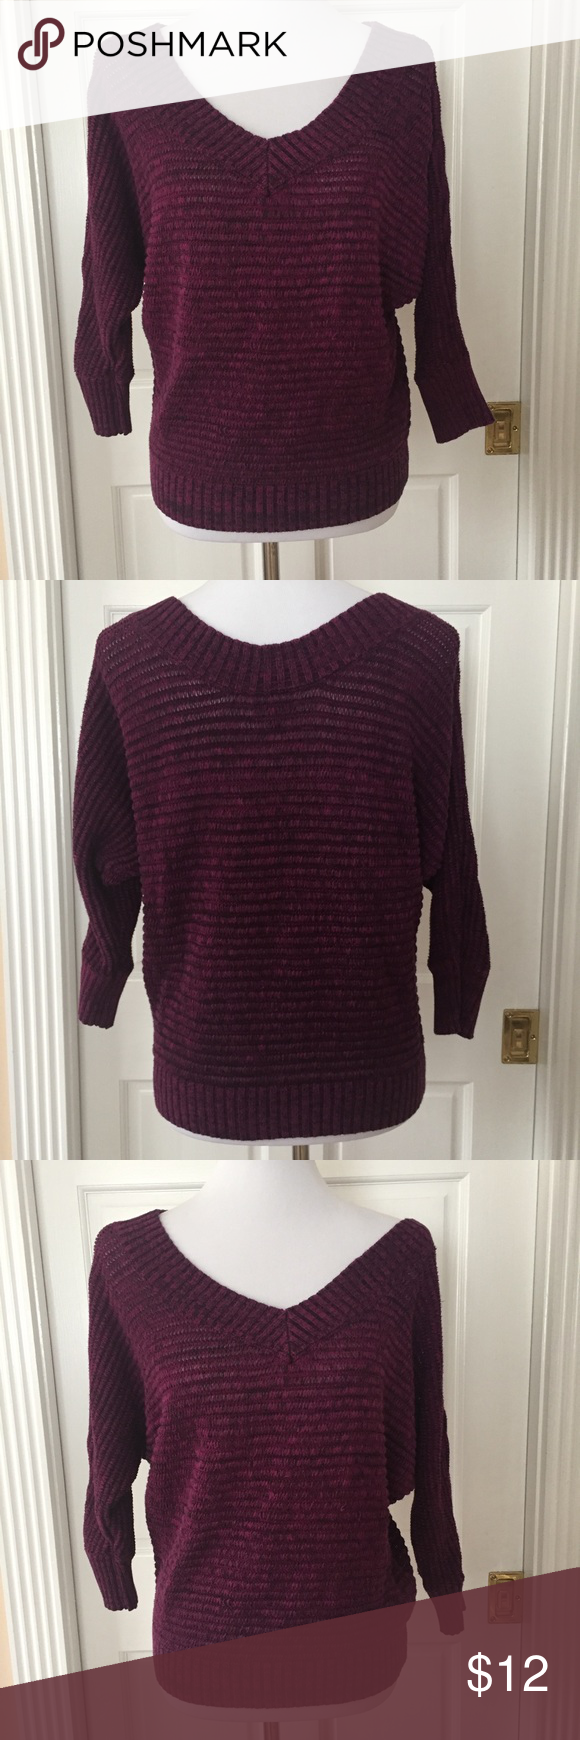 Express Marled 3/4 Sleeve Dolman Sweater | Shoulder, Purple and Cotton